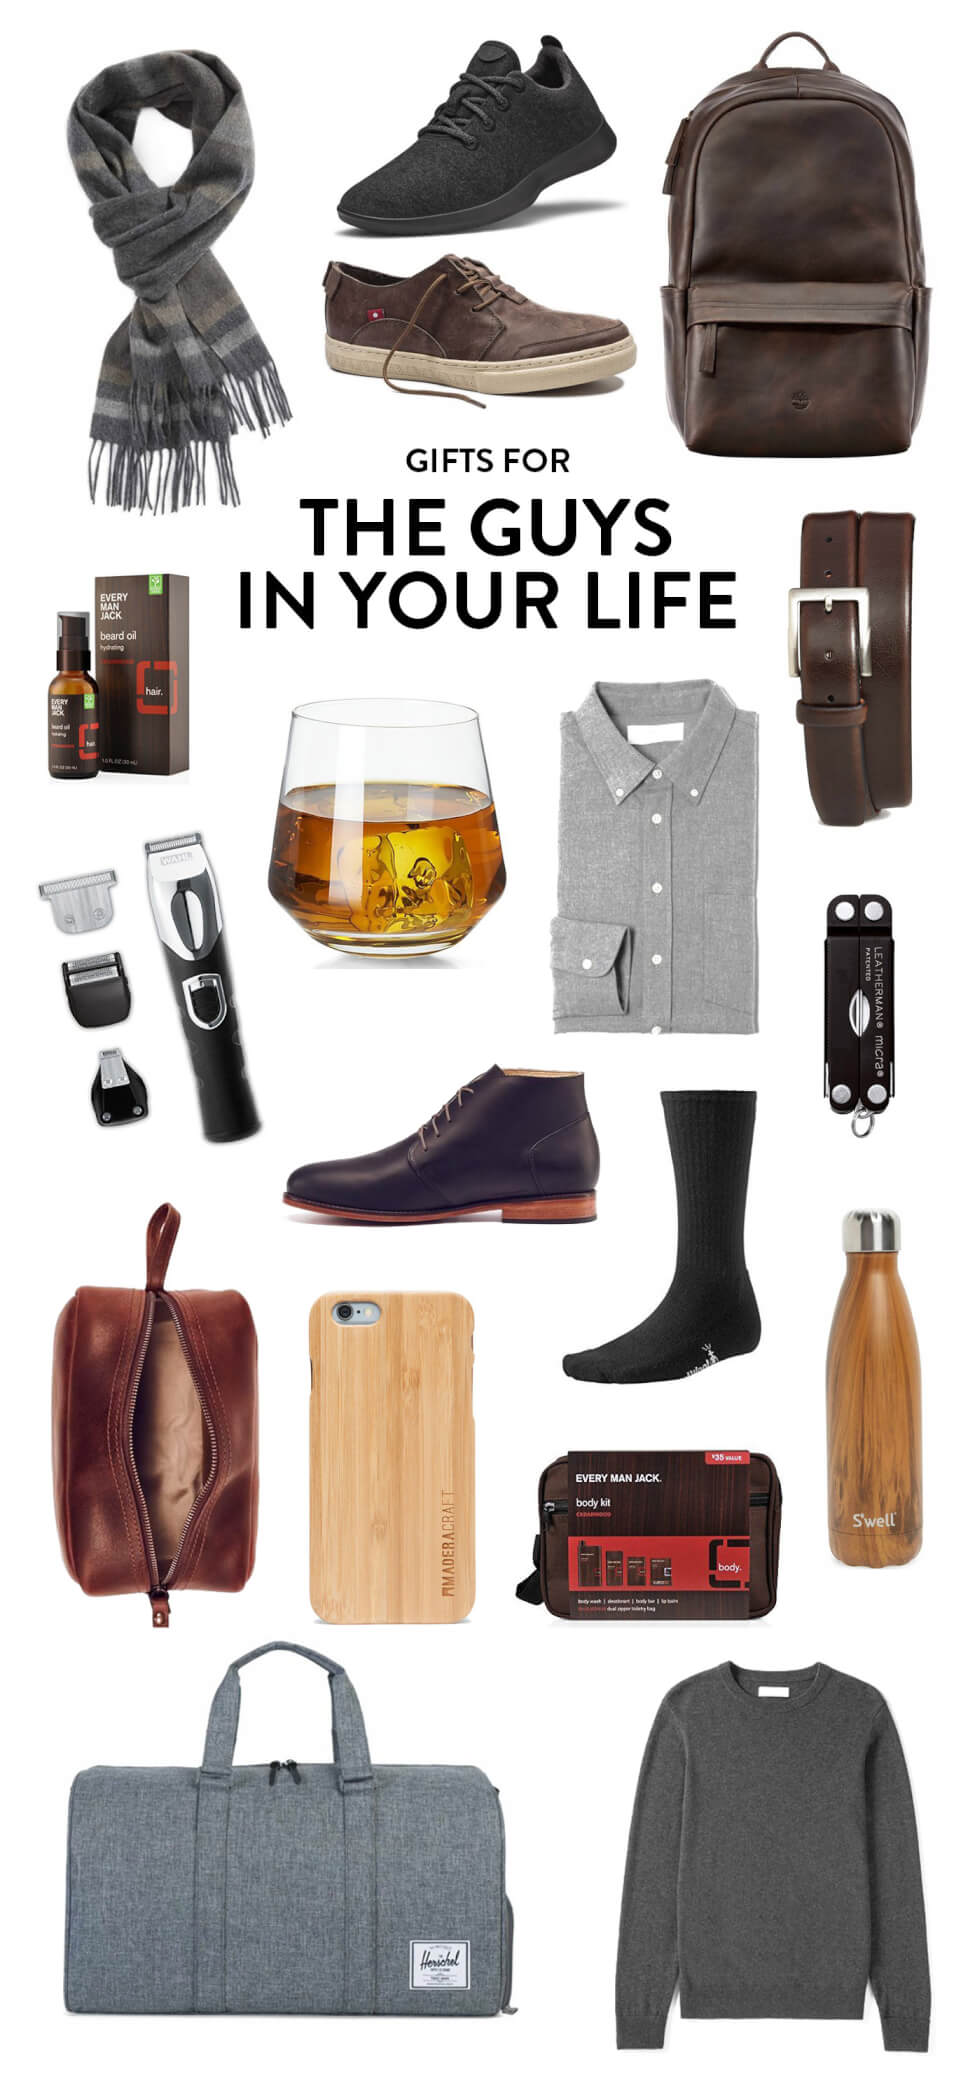 Holiday gifting ideas for the handsome men in your life, including everything from a cashmere scarf, to Allbirds, to Oliberte sneakers, to a leather backpack, belt, flannel shirt, sweater, water bottle, shaving kit, wooden iphone case, duffel bag, dop kit, shaver, and beard oil. | The Guys In Your Life Gift Guide | Gimme Some Oven Holidays 2017